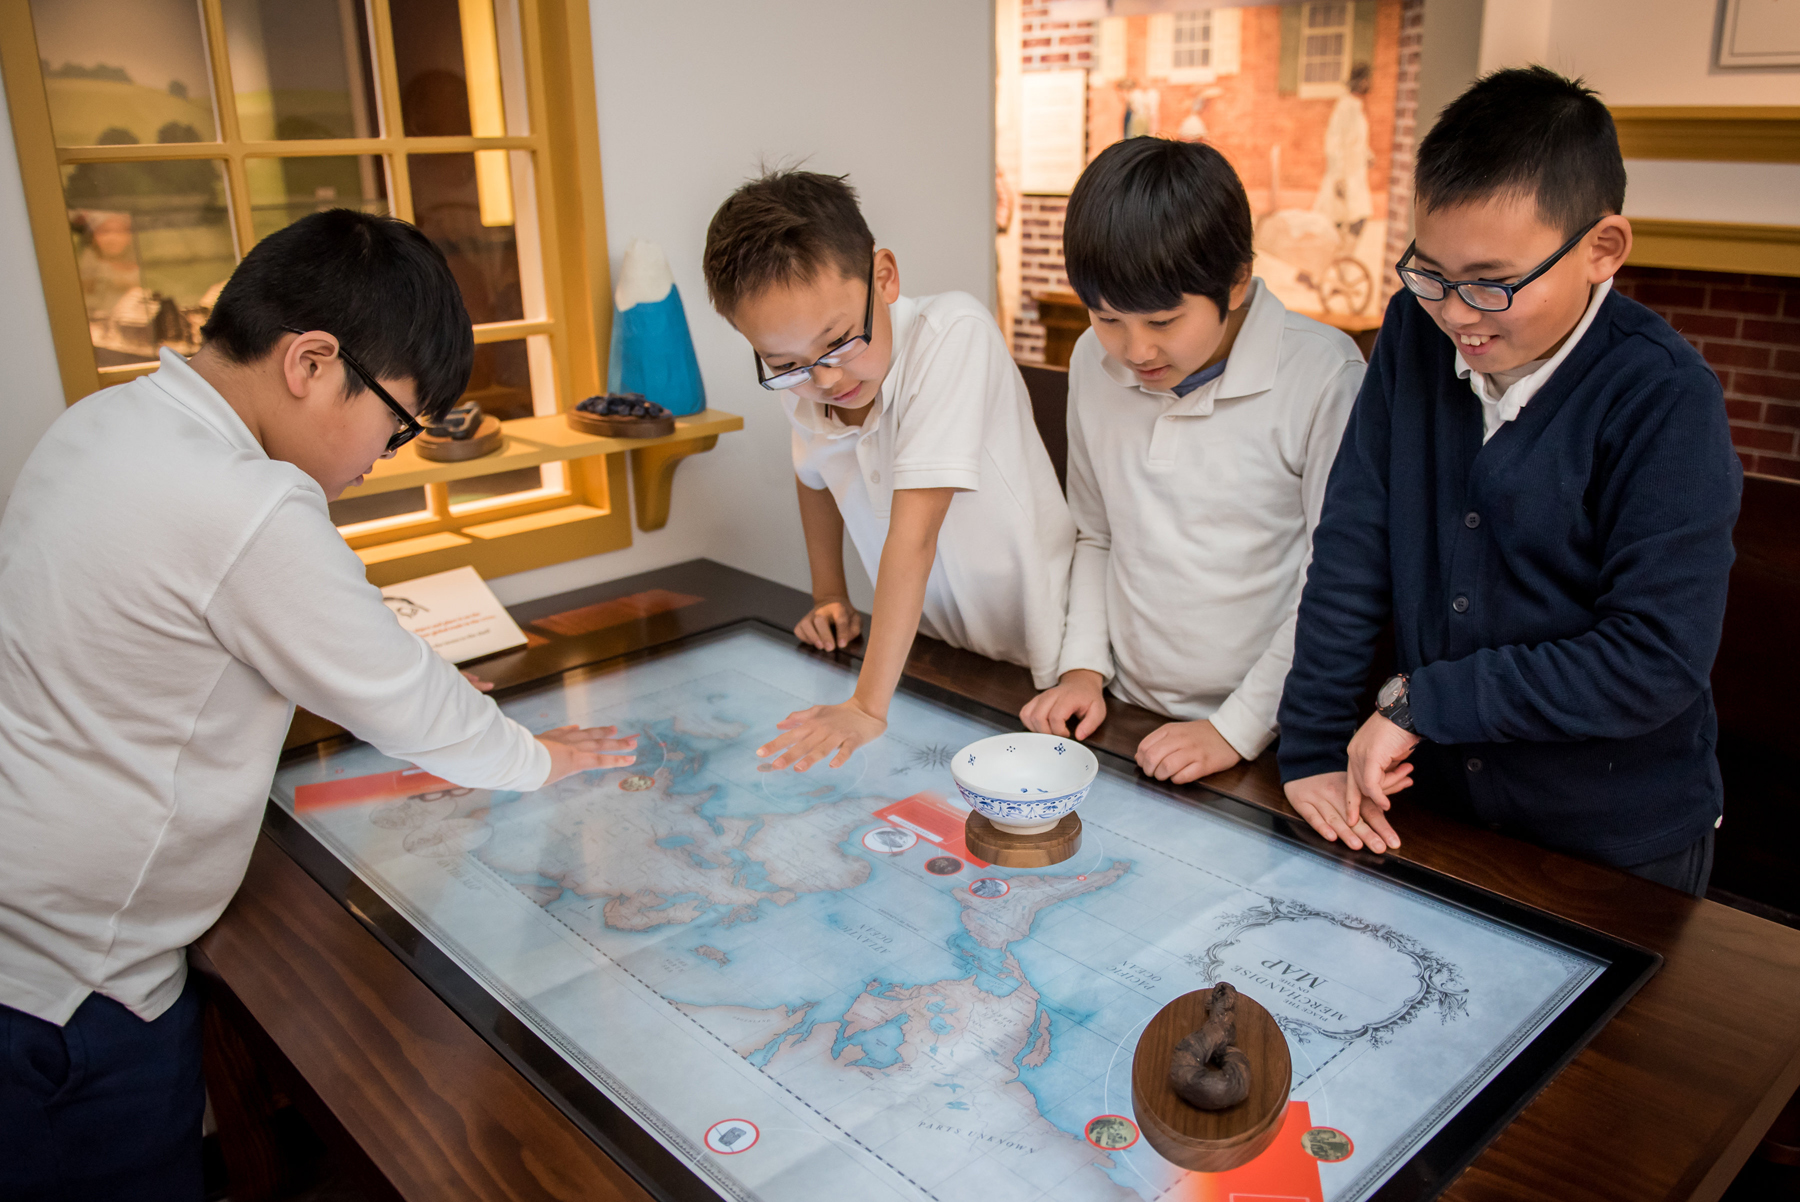 FamilySearch innovation powers interactive table at Museum of the American Revolution